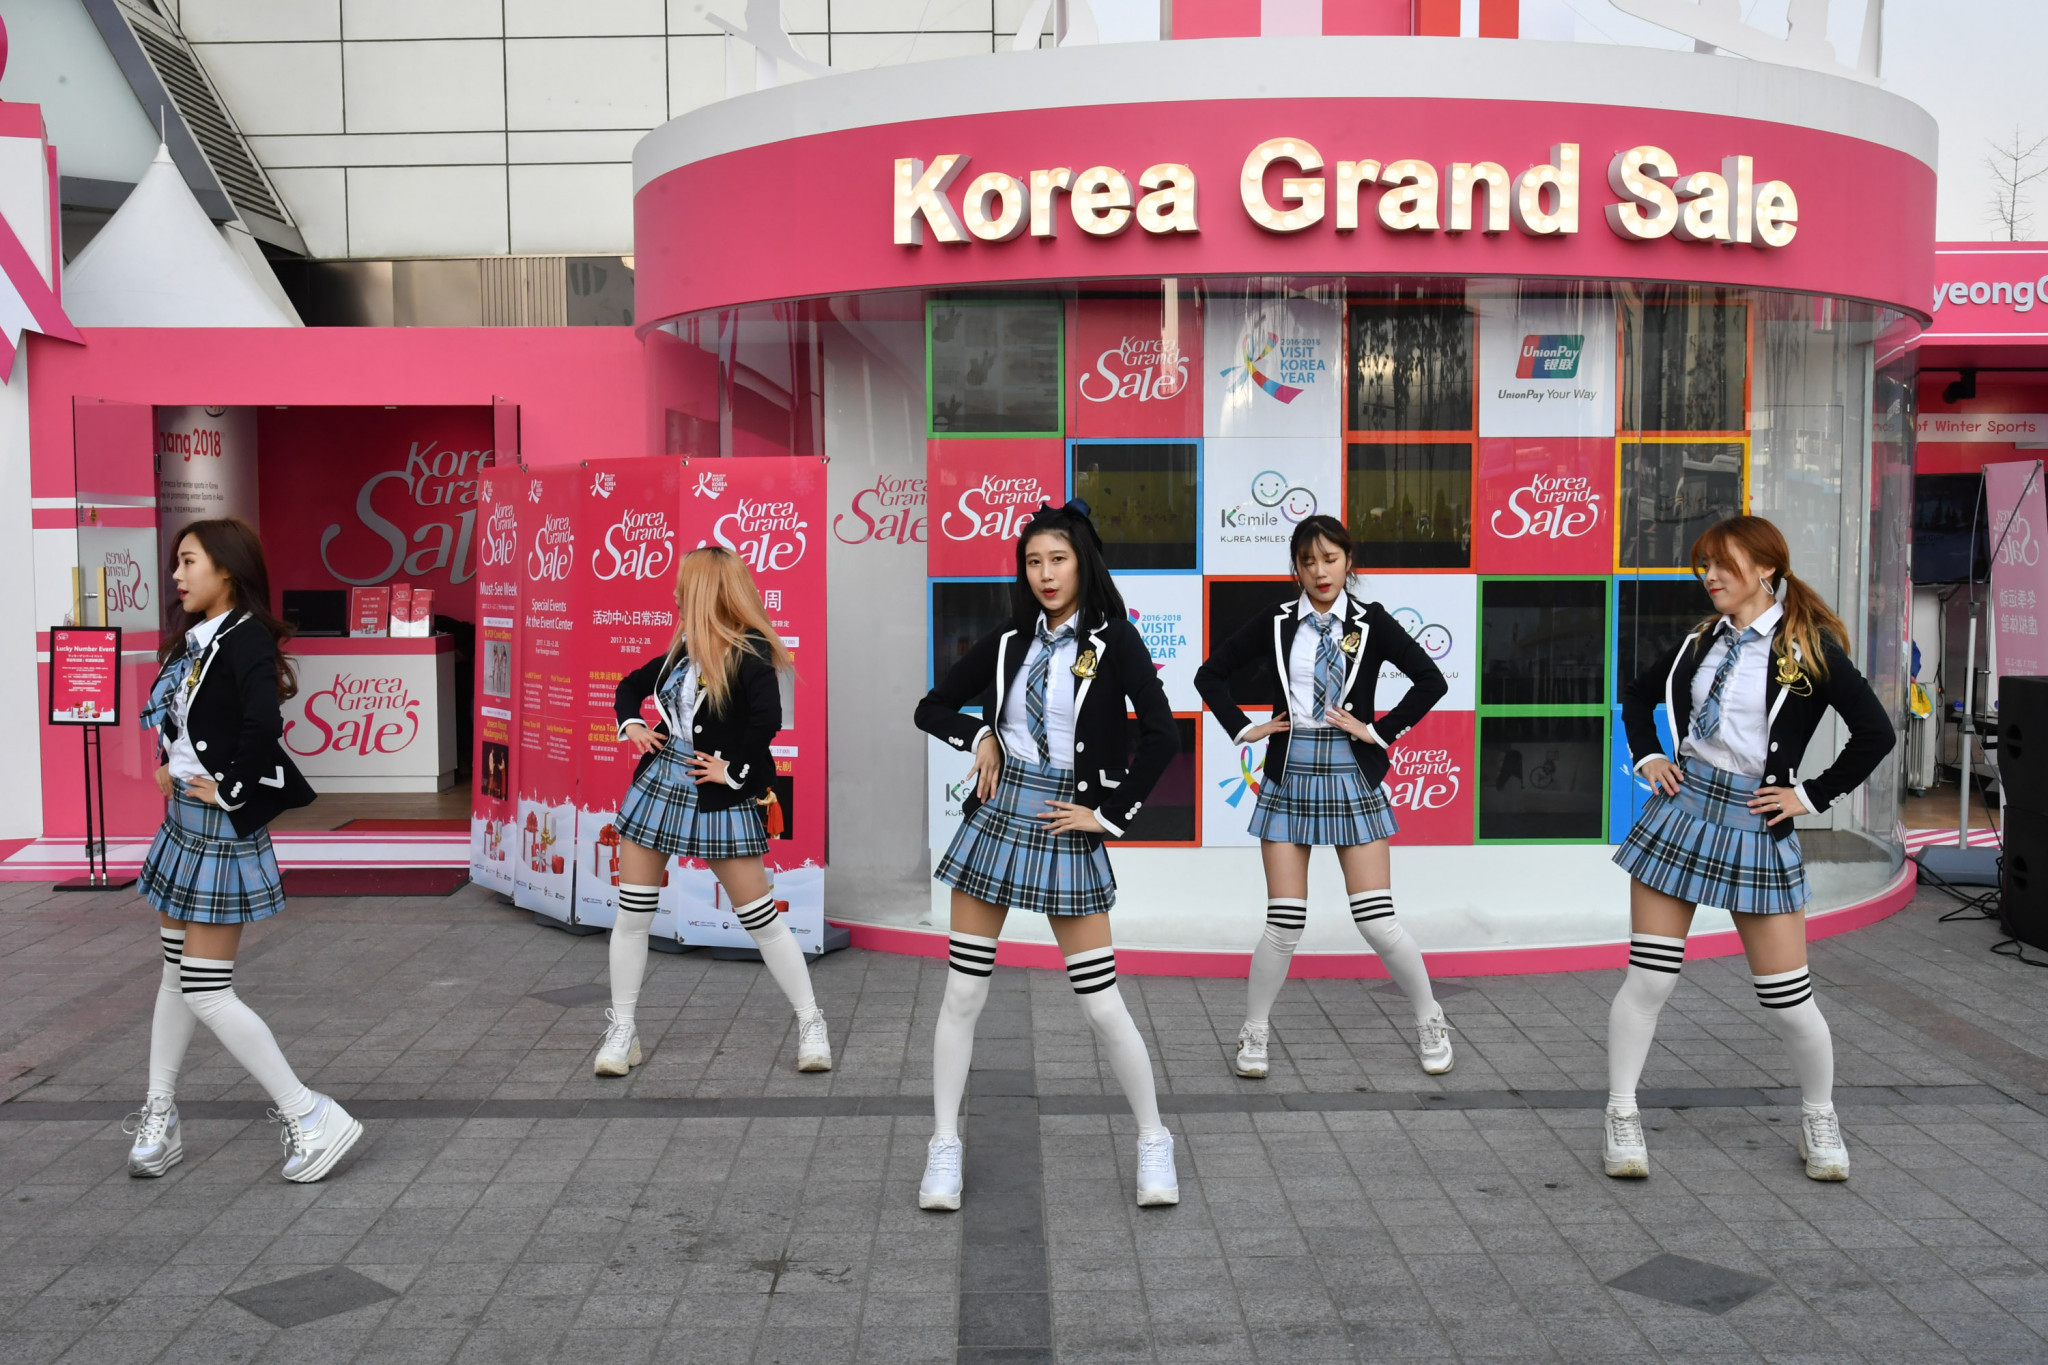 The Korea Grand Sale, designed to encourage foreigners to visit South Korea during Pyeongchang 2018,will included themed events on different aspects of life in South Korea, including K-pop ©Visit Korea Committee